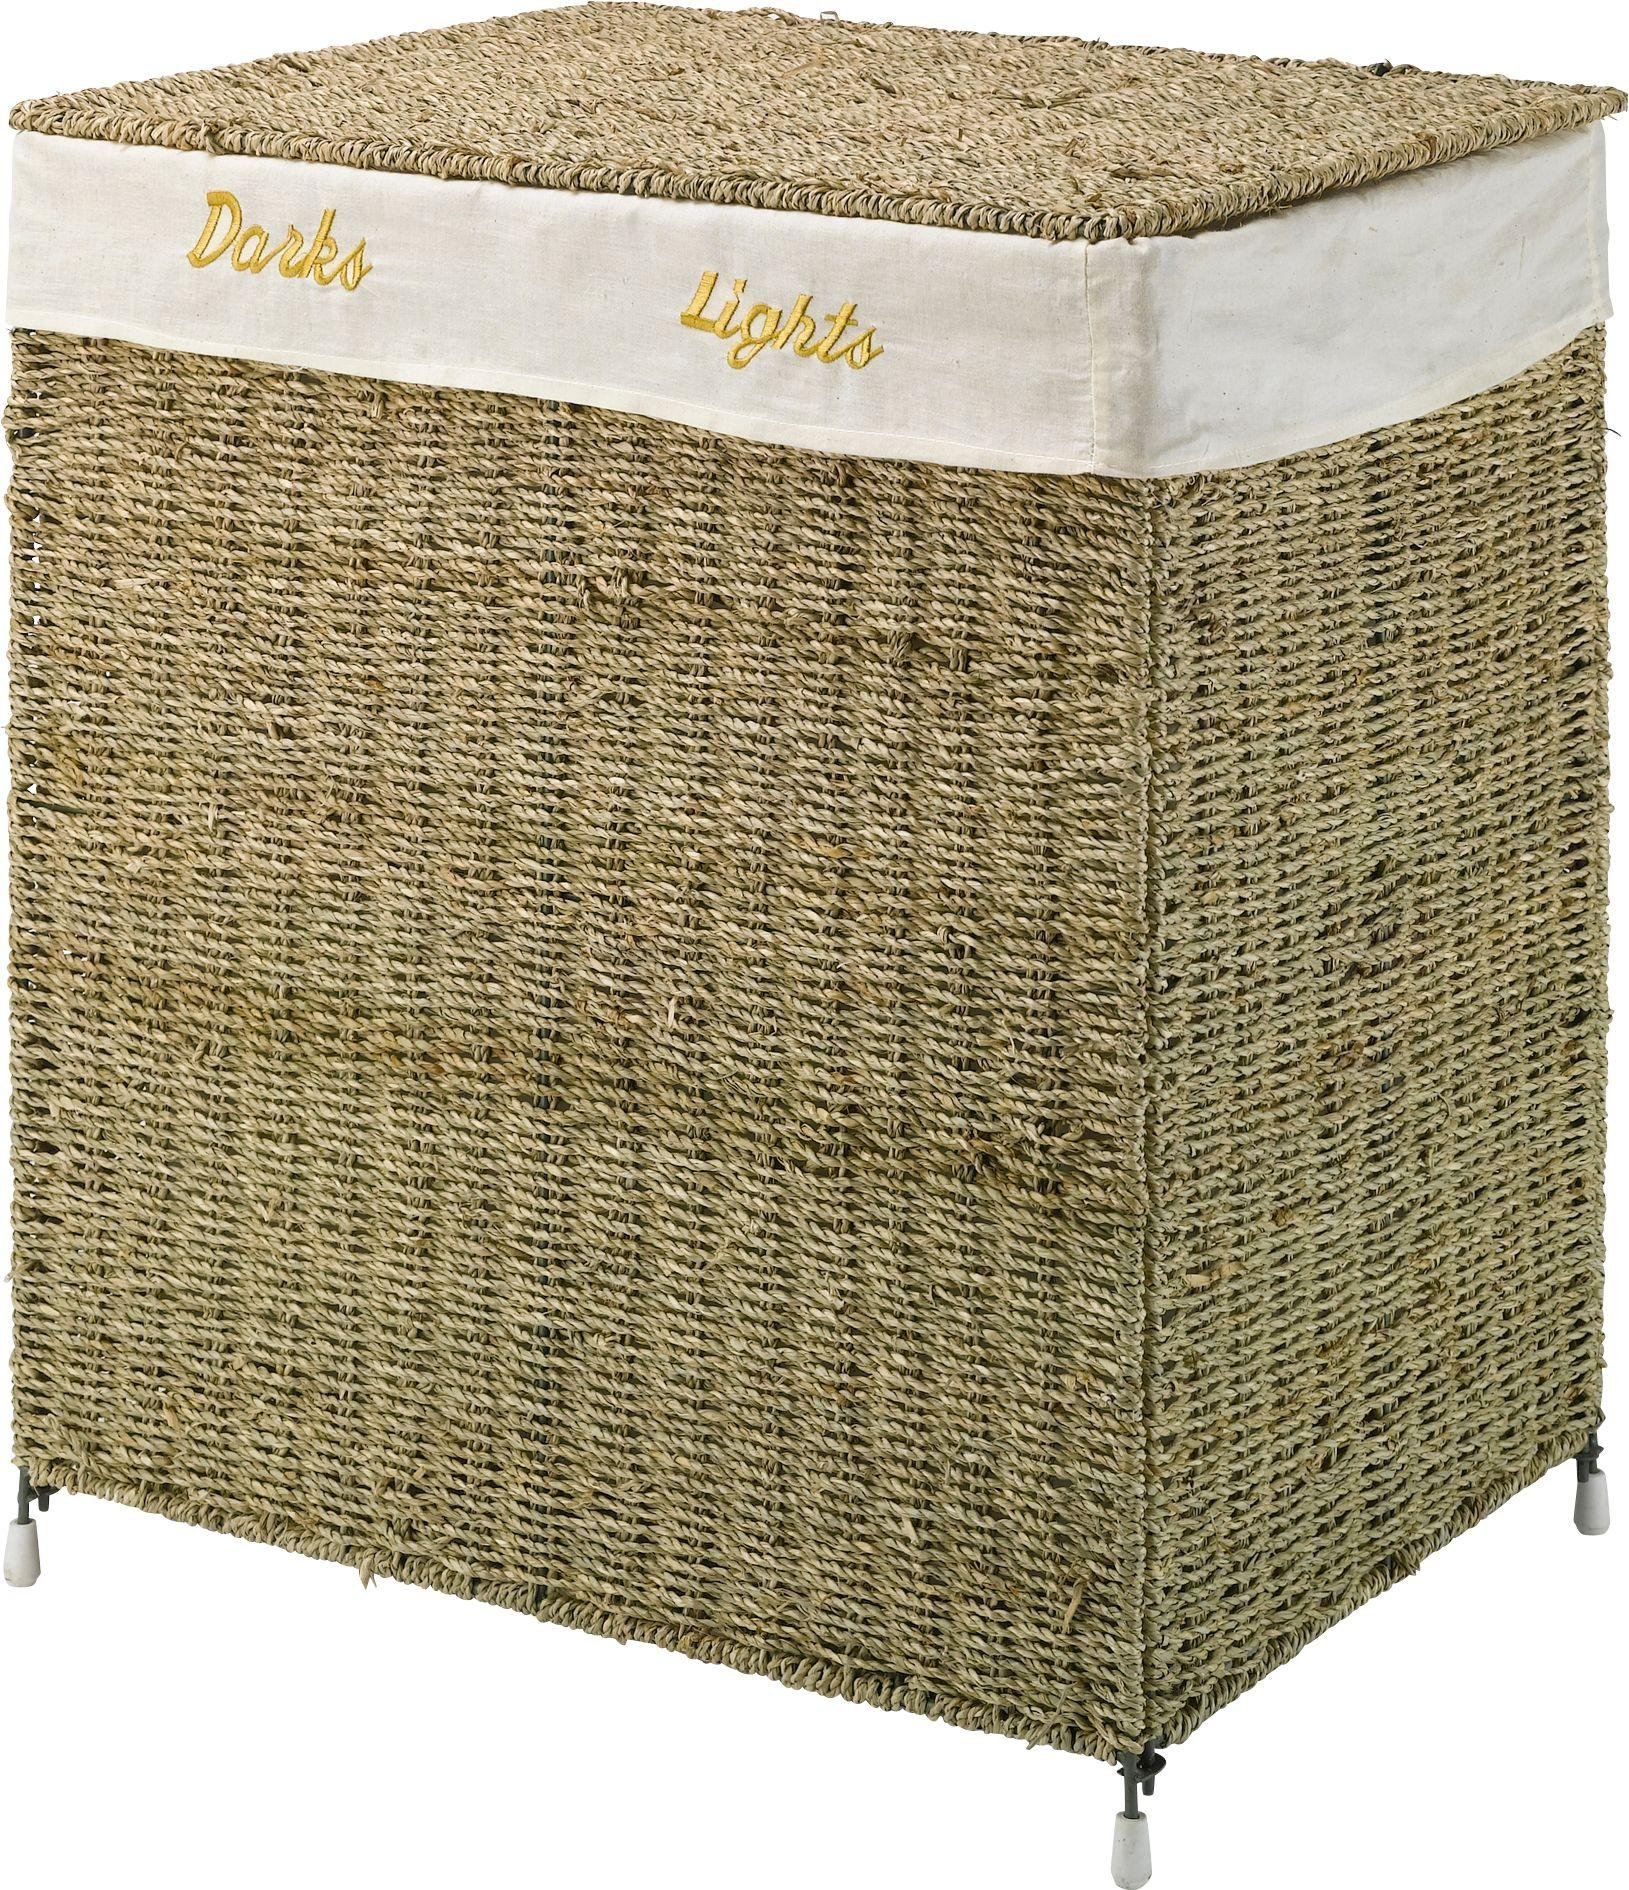 home-laundry-basket-sorter-seagrass